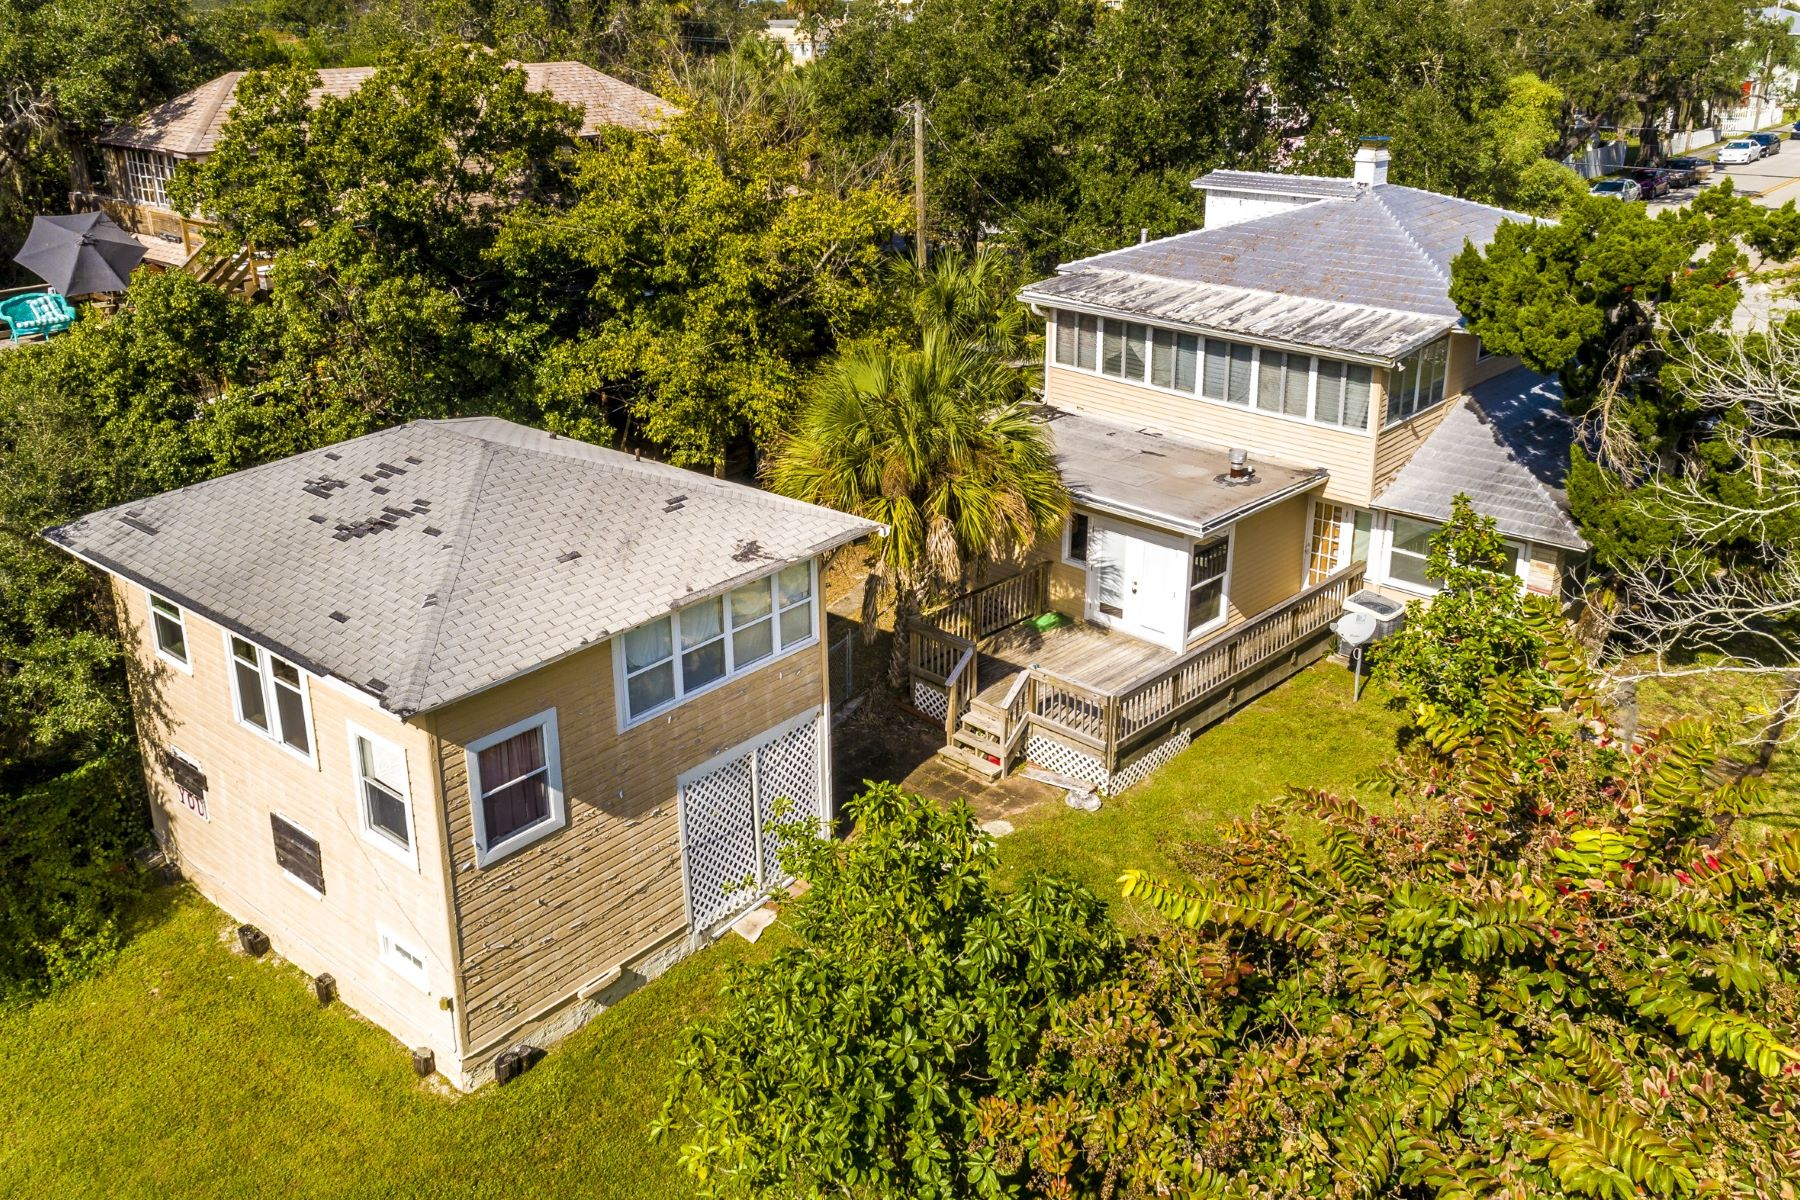 Single Family Homes for Sale at Two Historic Homes Being Sold Together! 819 & 823 E Melbourne Avenue Melbourne, Florida 32901 United States